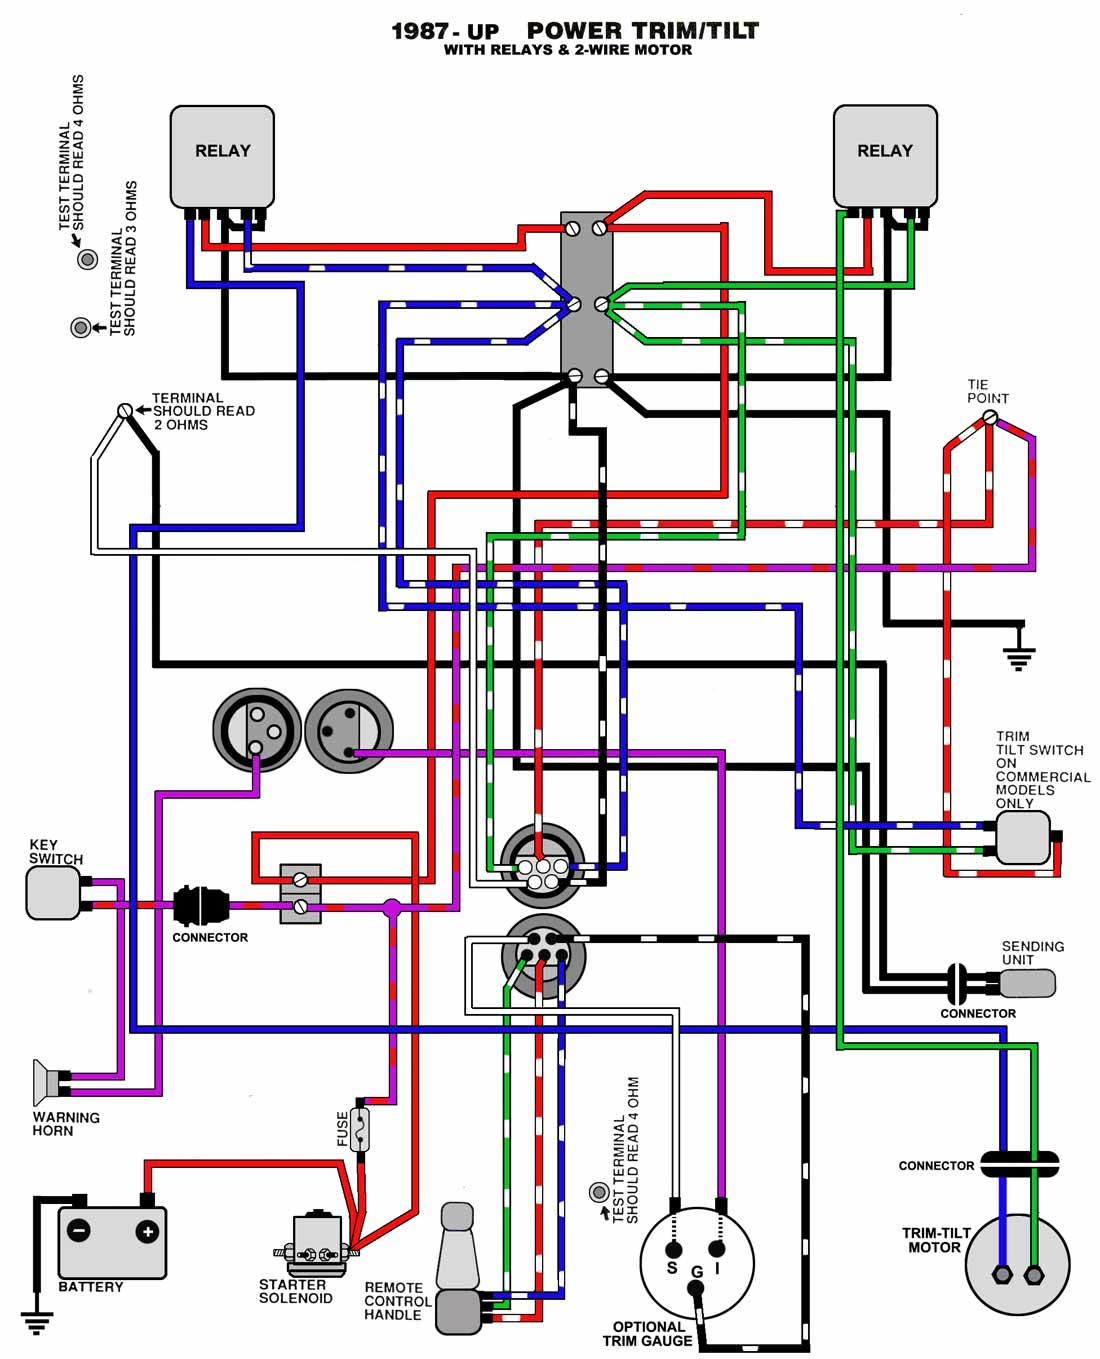 Wiring Diagram For Omc Outboard Motor Libraries 200 Hp Mercury Free Download Common Trim And Tilt System Diagramstrim U0026 1987 Up Relay